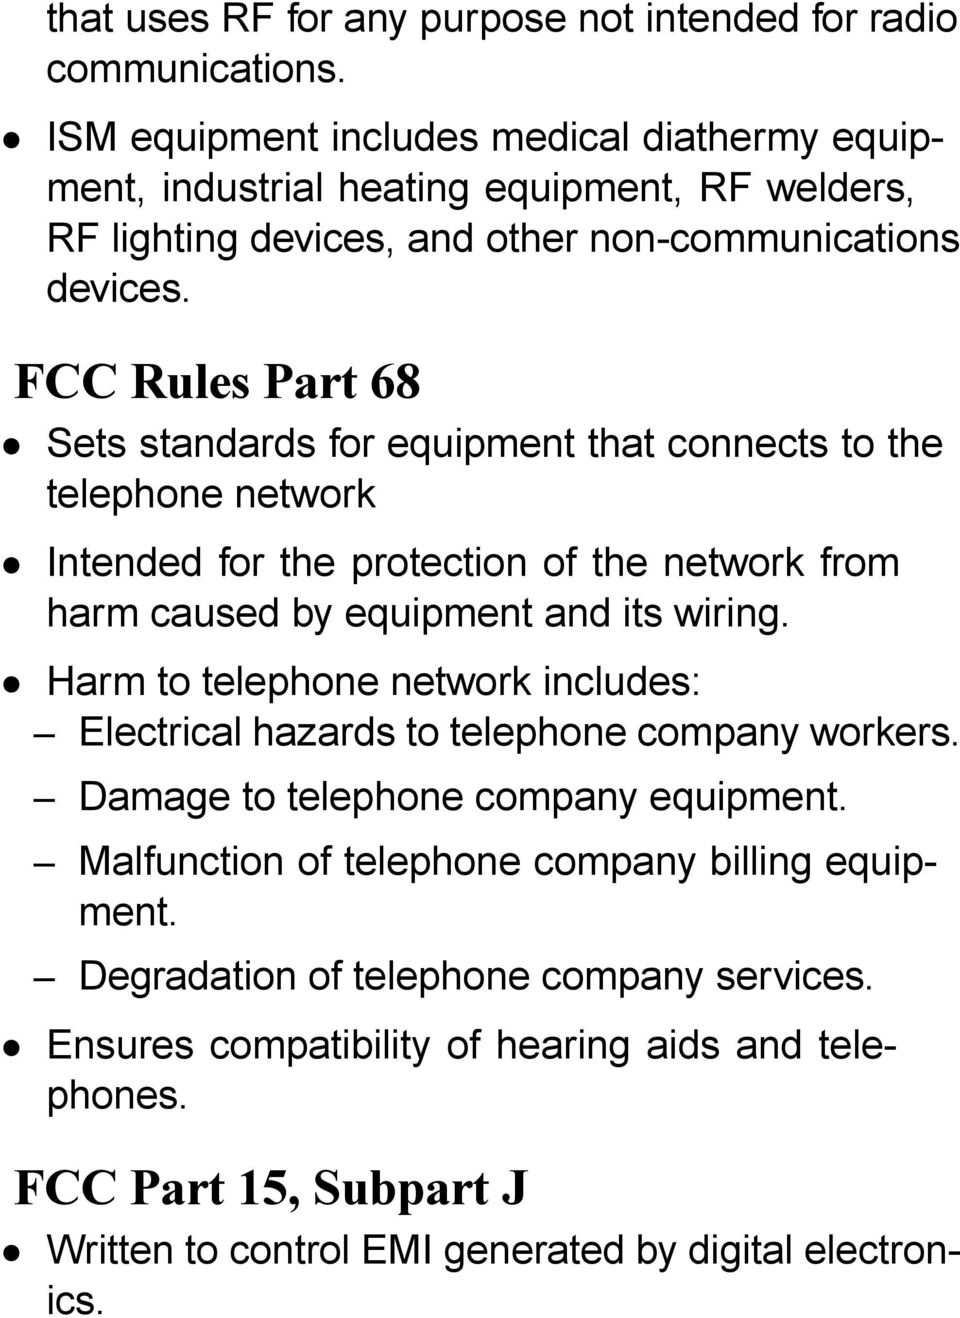 FCC Rules Part 68 Sets standards for equipment that connects to the telephone network Intended for the protection of the network from harm caused by equipment and its wiring.